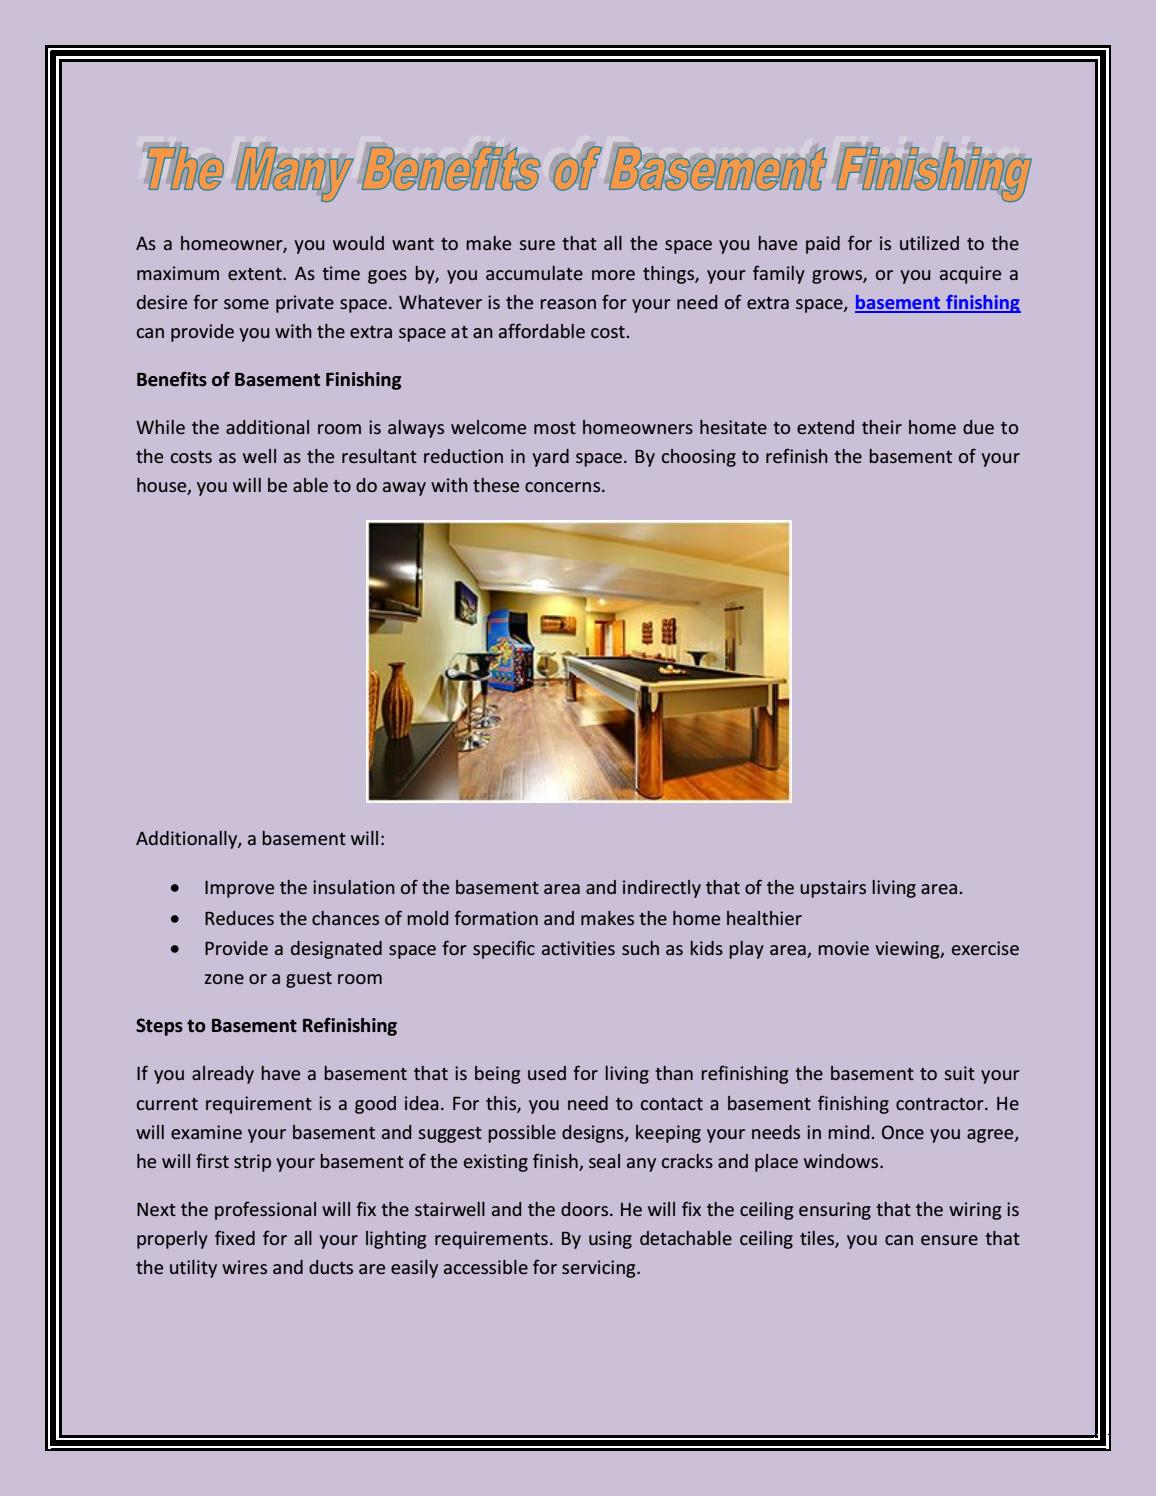 Extend Your Home By Basement Finishing Finishedbasement Issuu Wiring Insulation